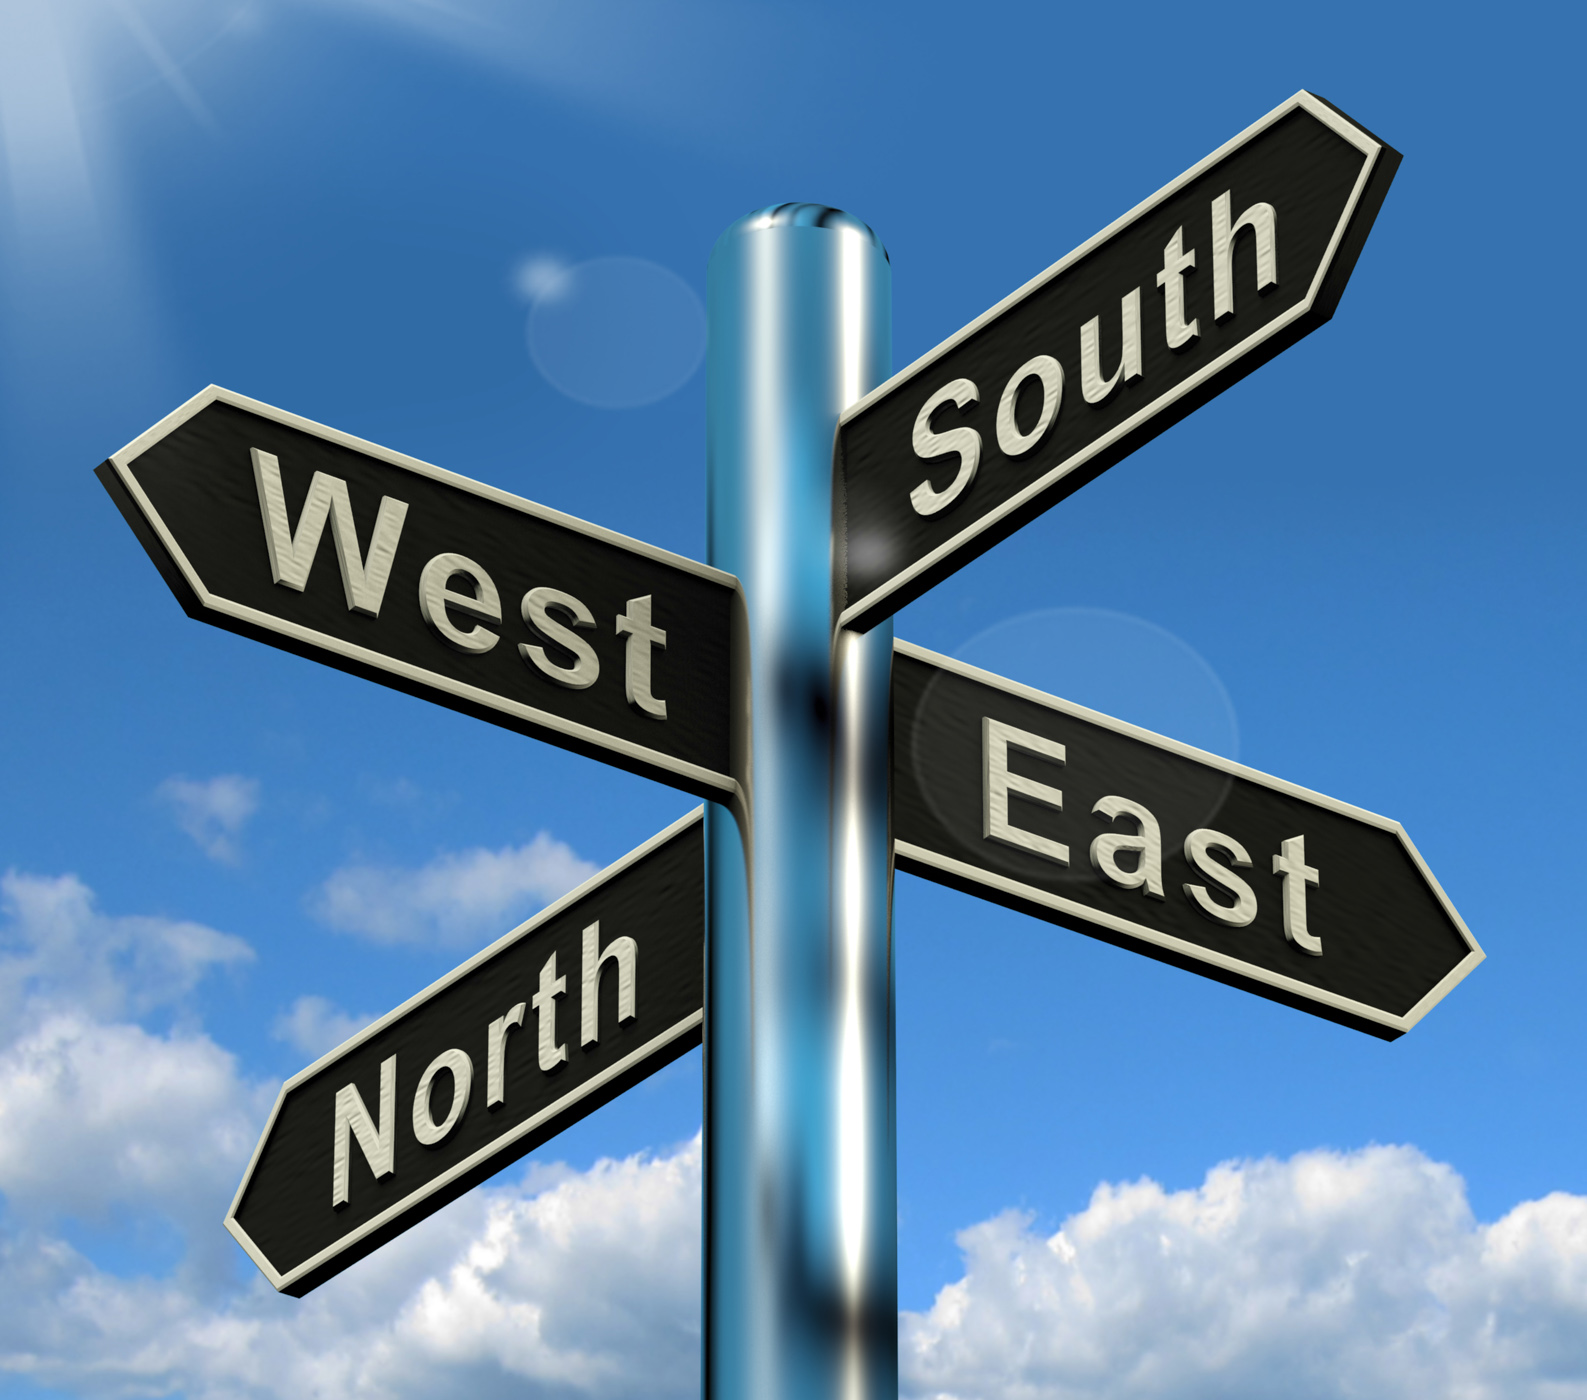 North east south west signpost shows travel or direction photo